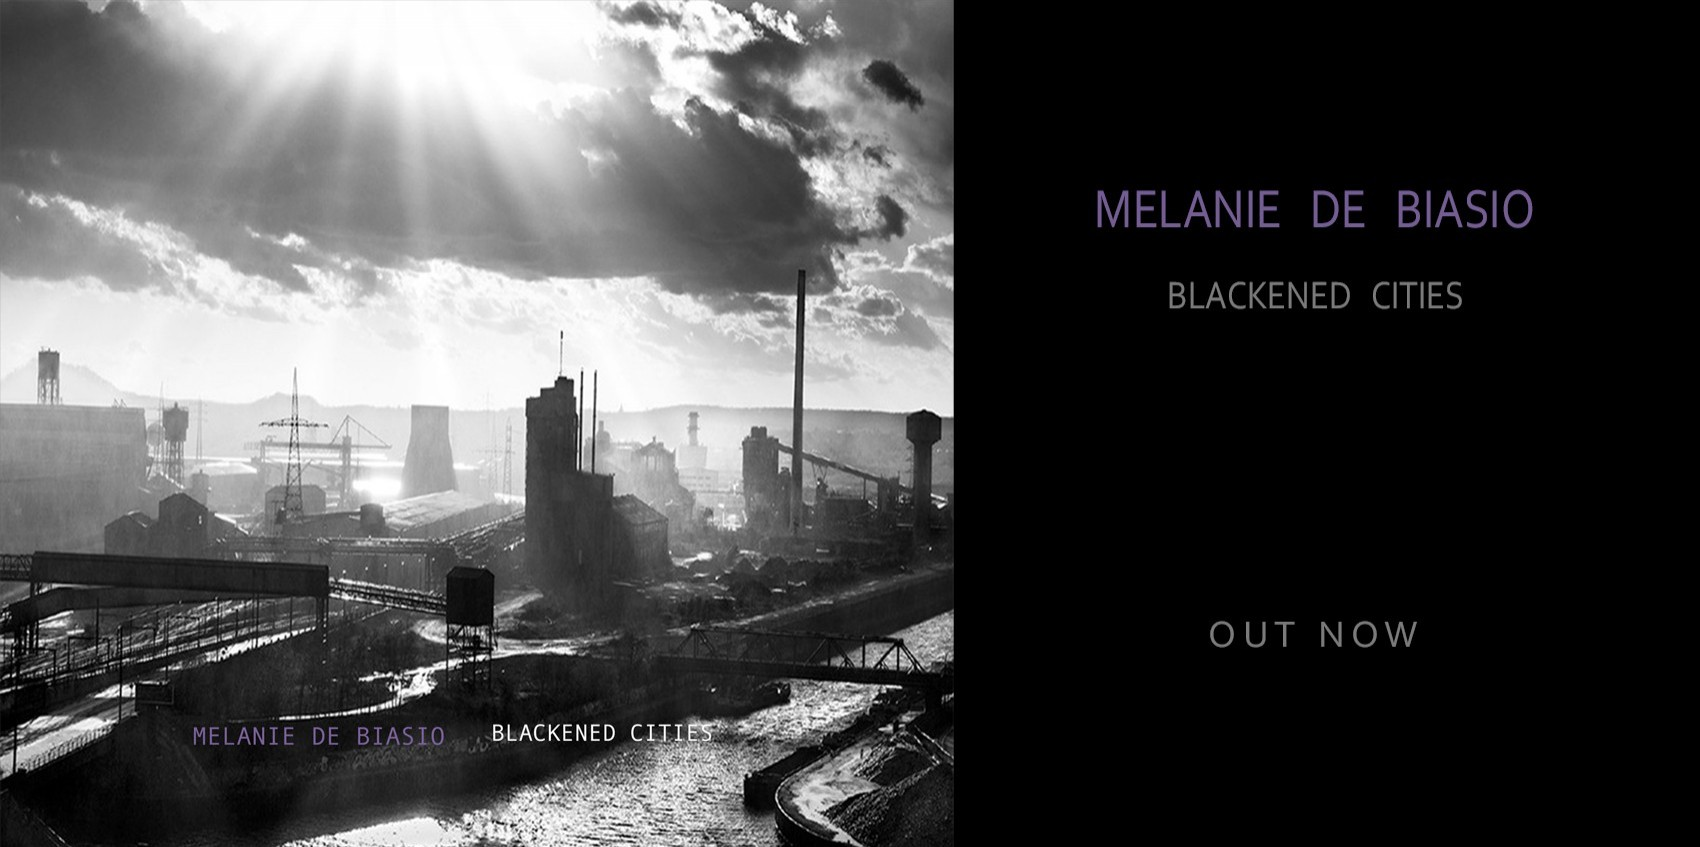 Melanie de Biasio\'s \'Blackened Cities\' Is Out Now